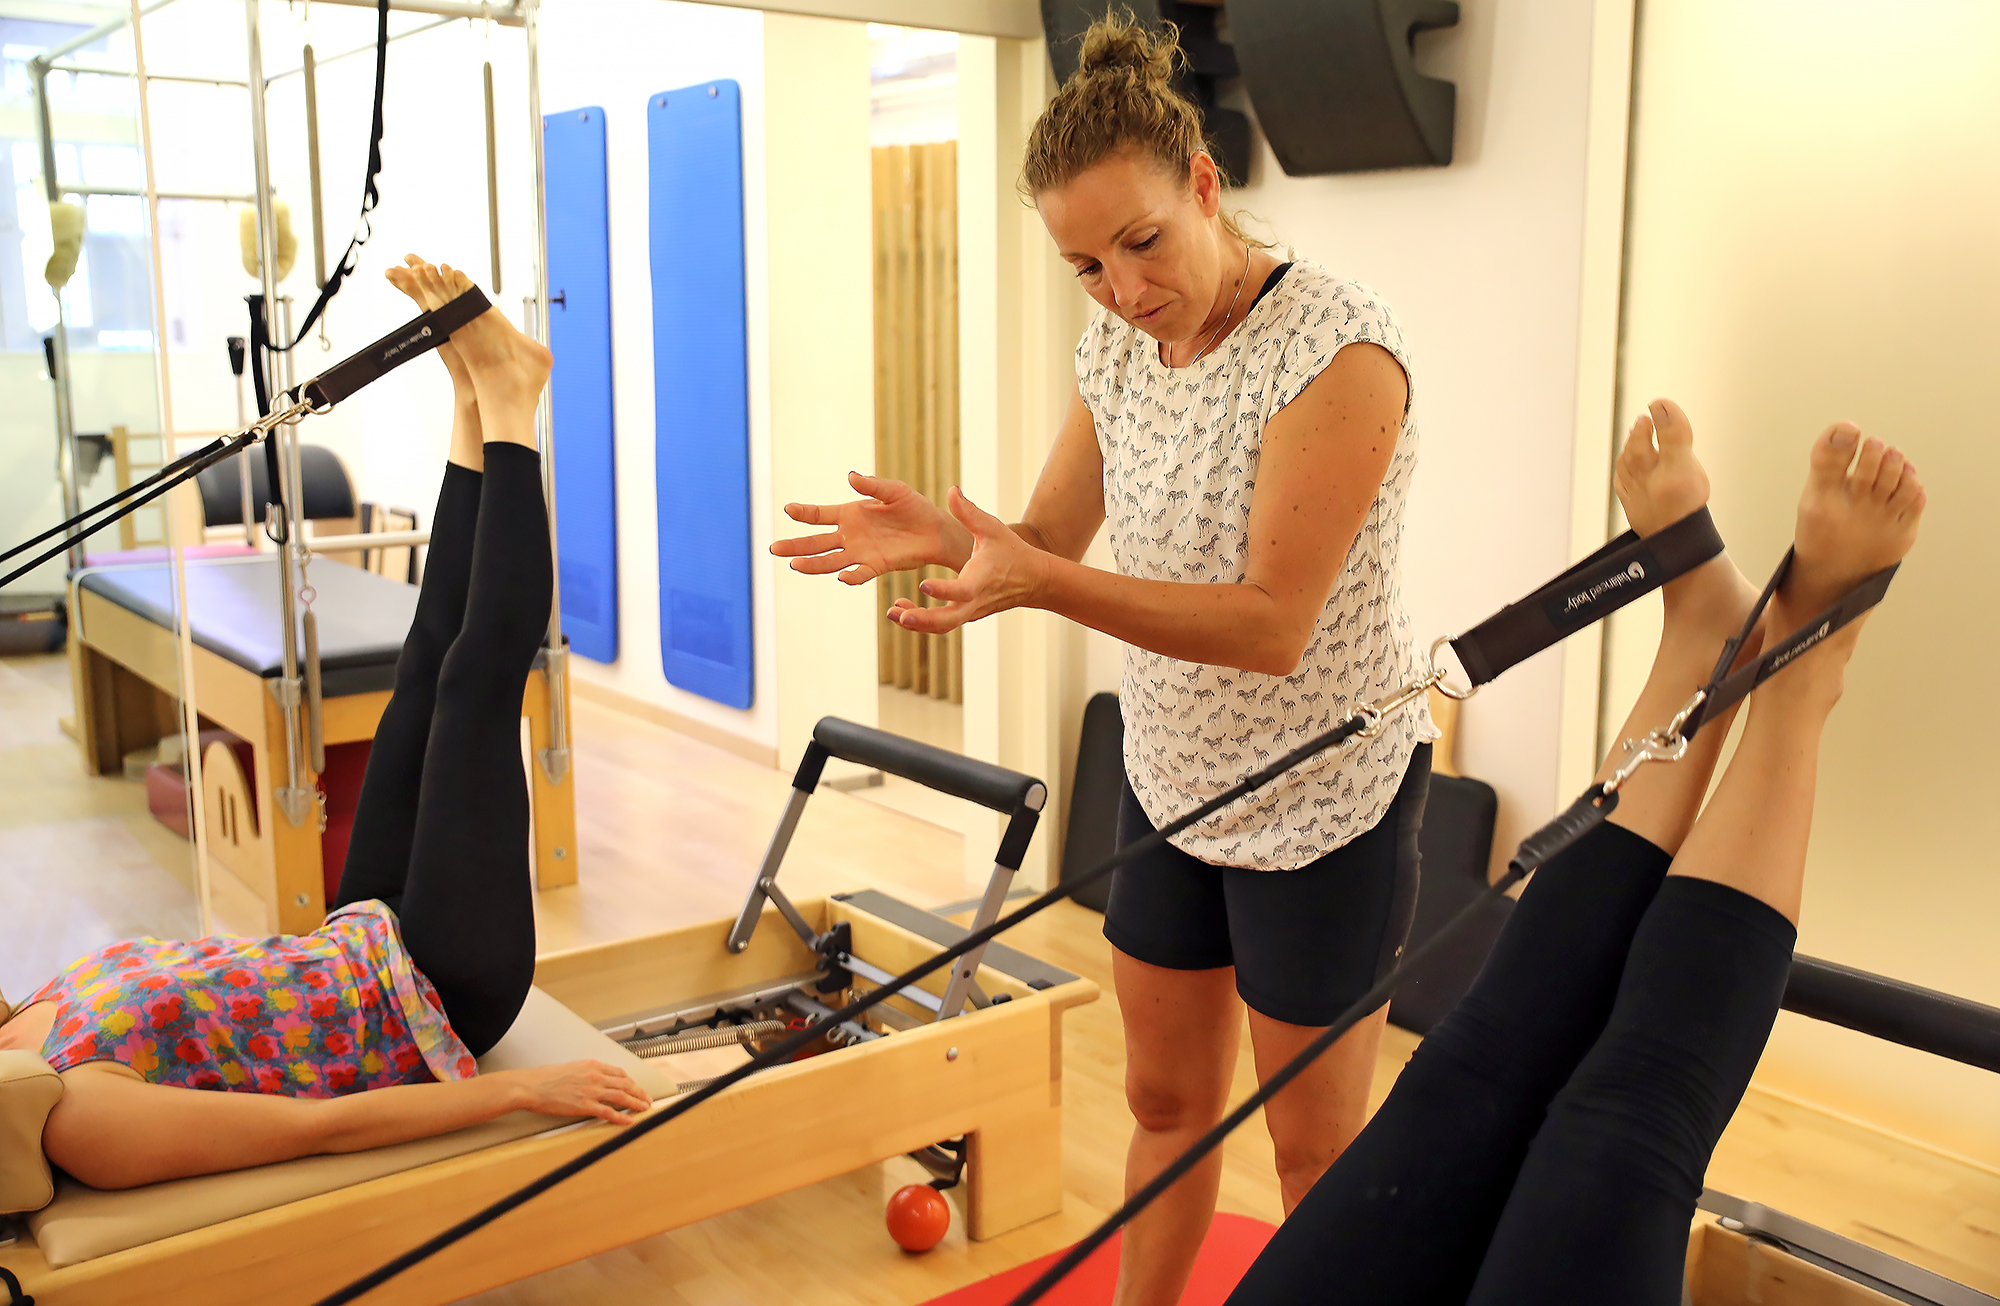 New to Reformer? Try 2 classes for € 40!